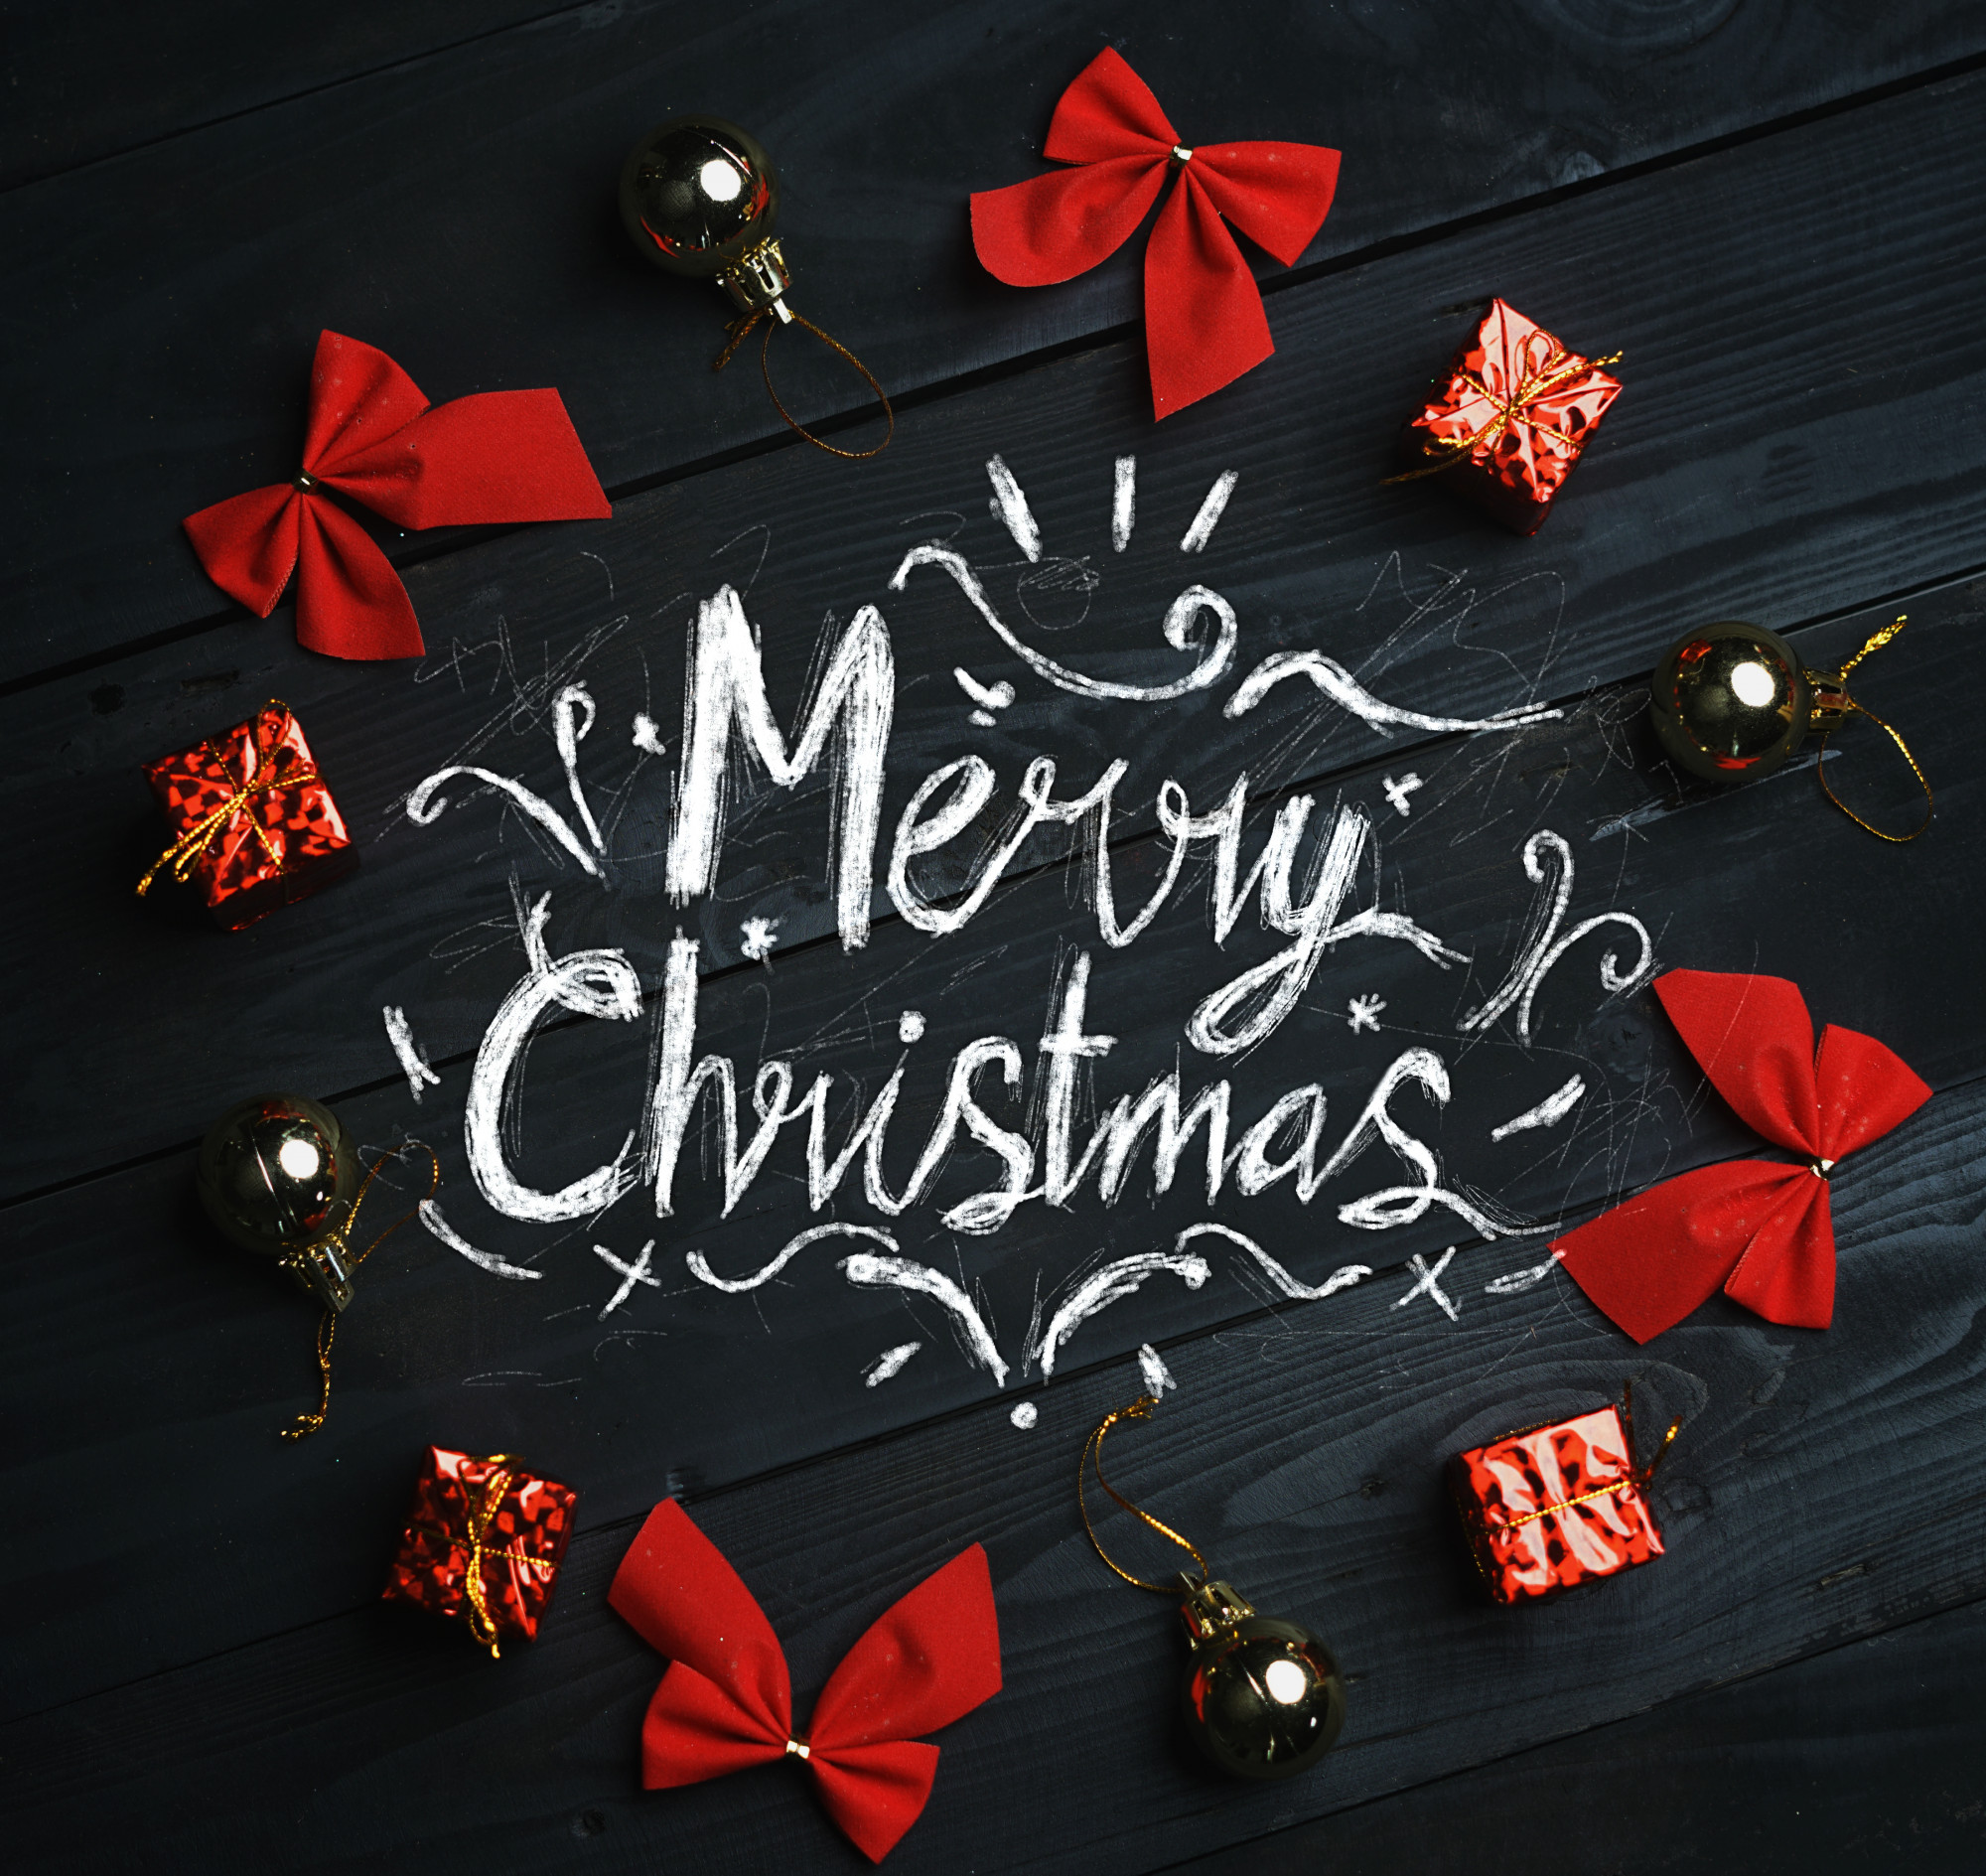 Merry Christmas Typography Christmas Ornament Formed Circle on Black Wooden Texture